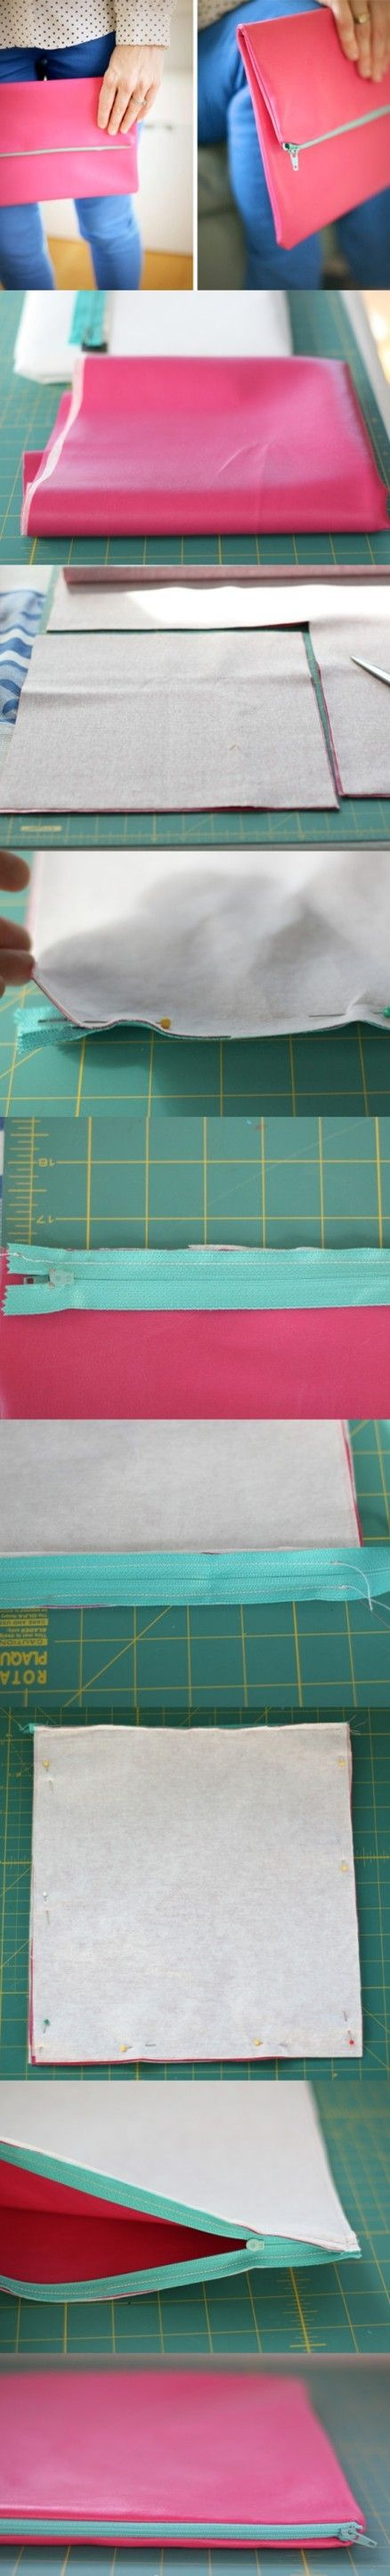 DIY hand bag, what materials do you already have that you could repurpose. good instructions. Thank you.